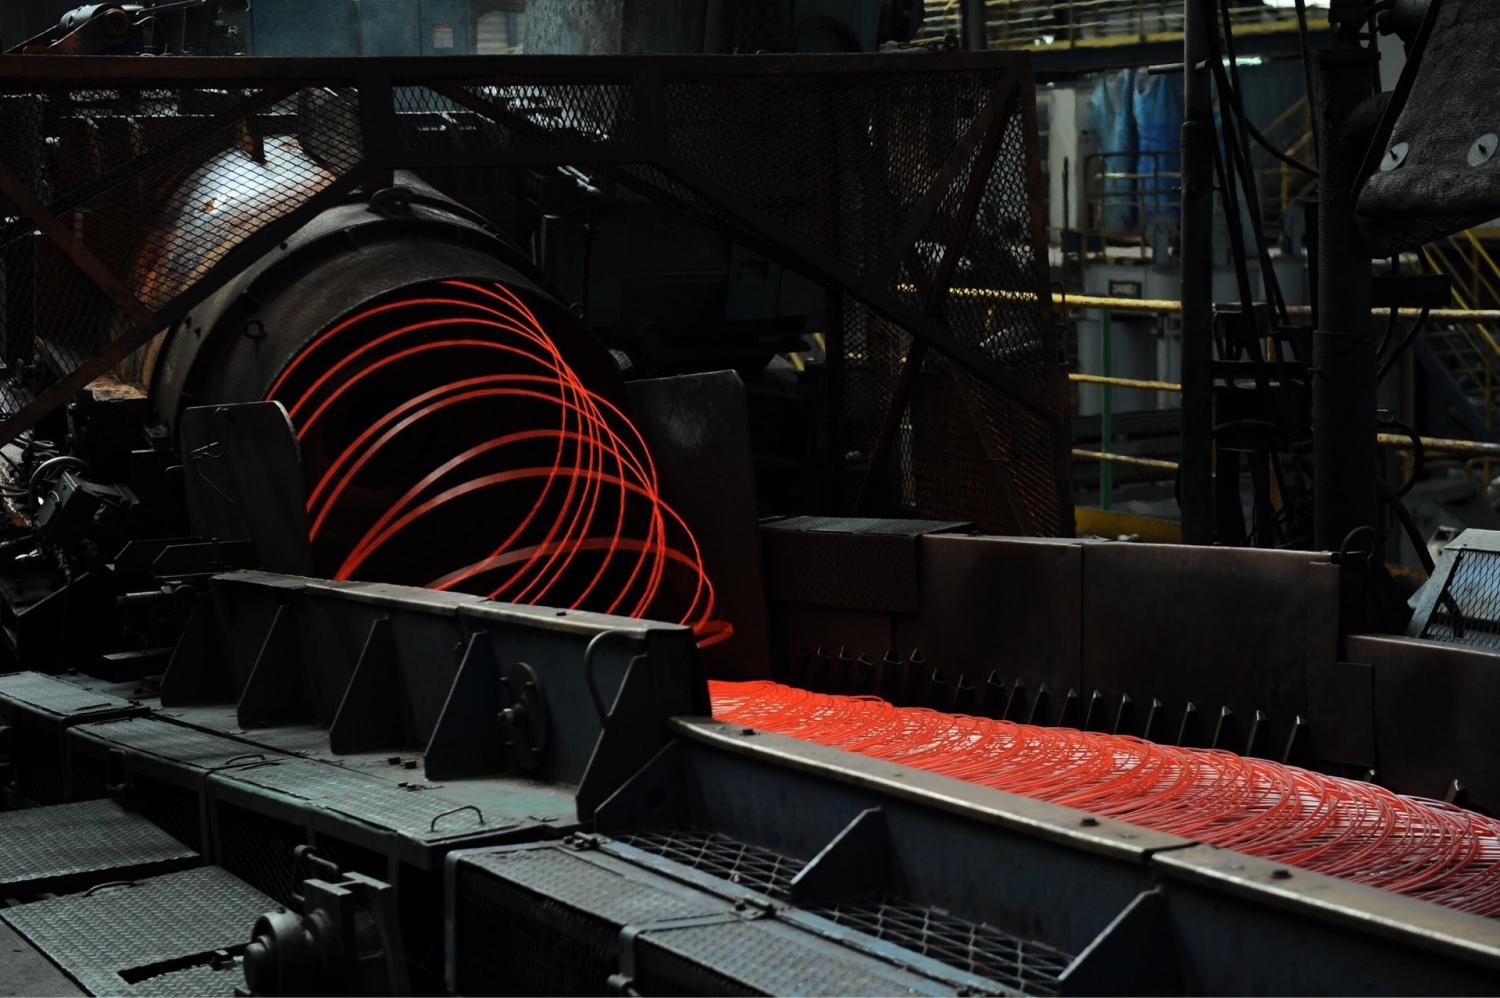 Hot-rolling steel rods being churned out at the Kobelco Millcon Steel factory in Rayong.